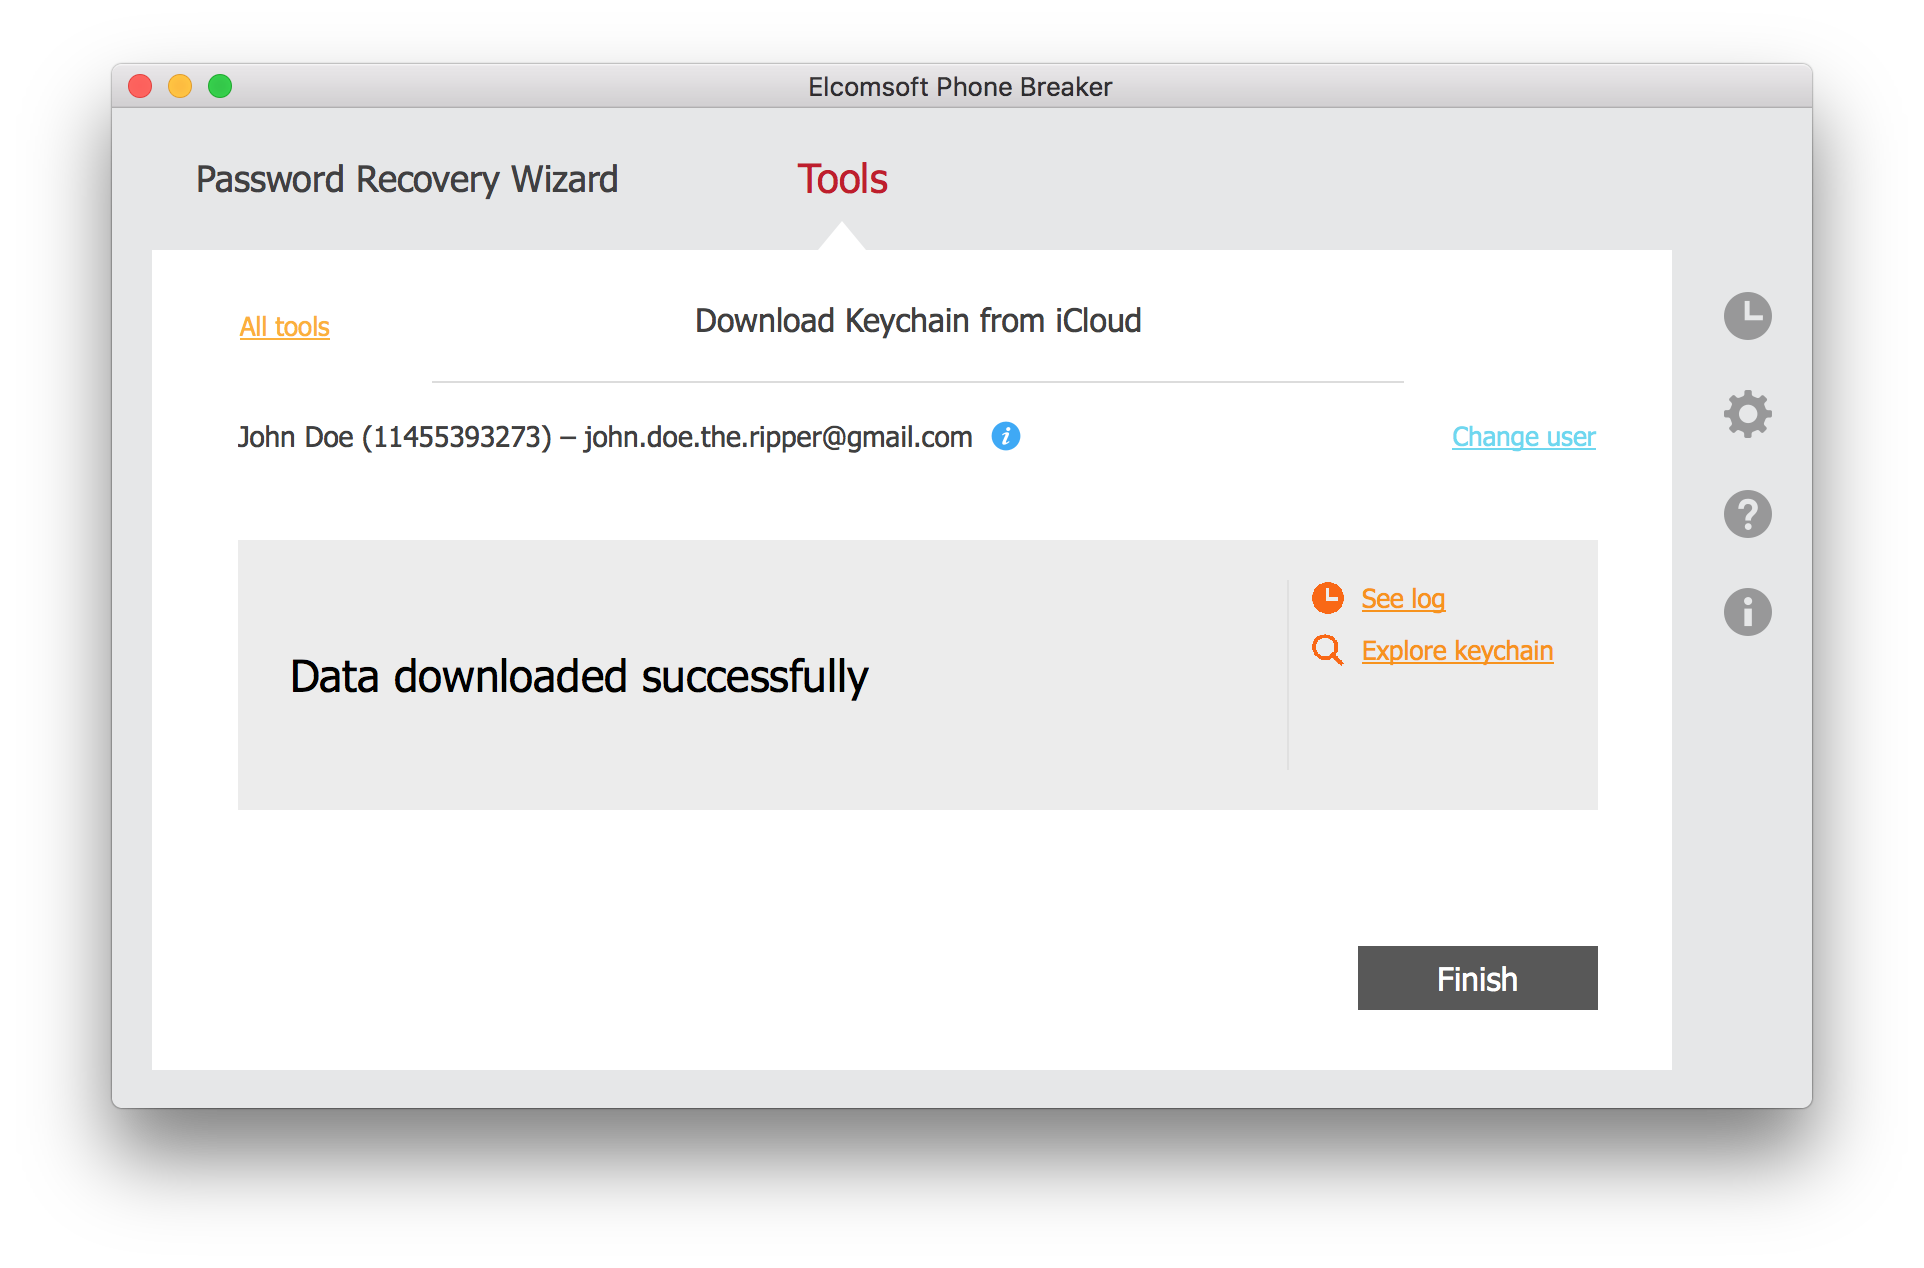 How to Extract iCloud Keychain with Elcomsoft Phone Breaker ... f30bcbc8a